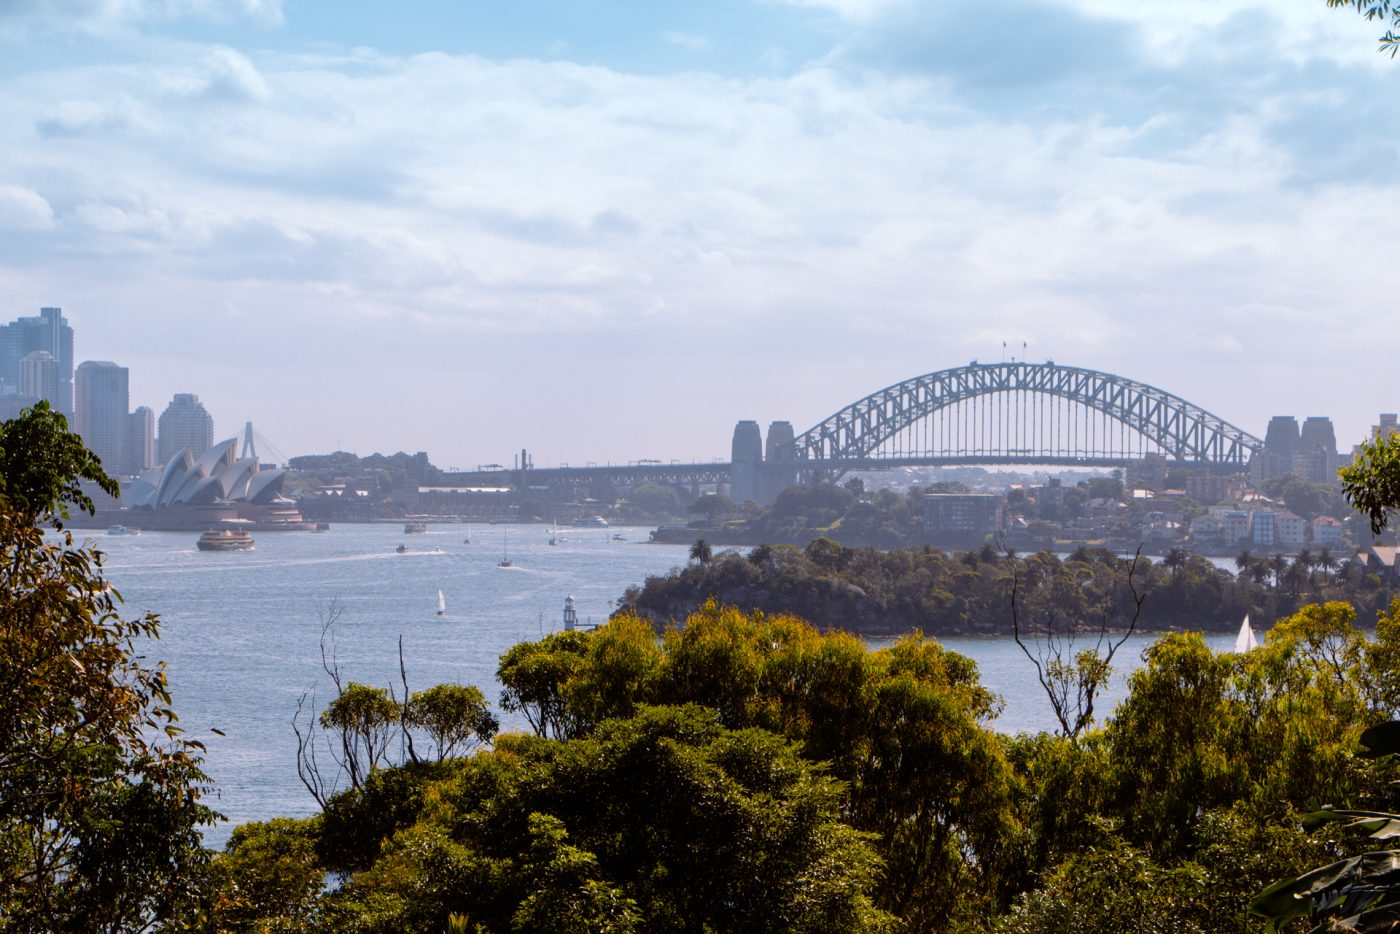 Sydney Zoo overlooking Sydney harbour bridge and bay